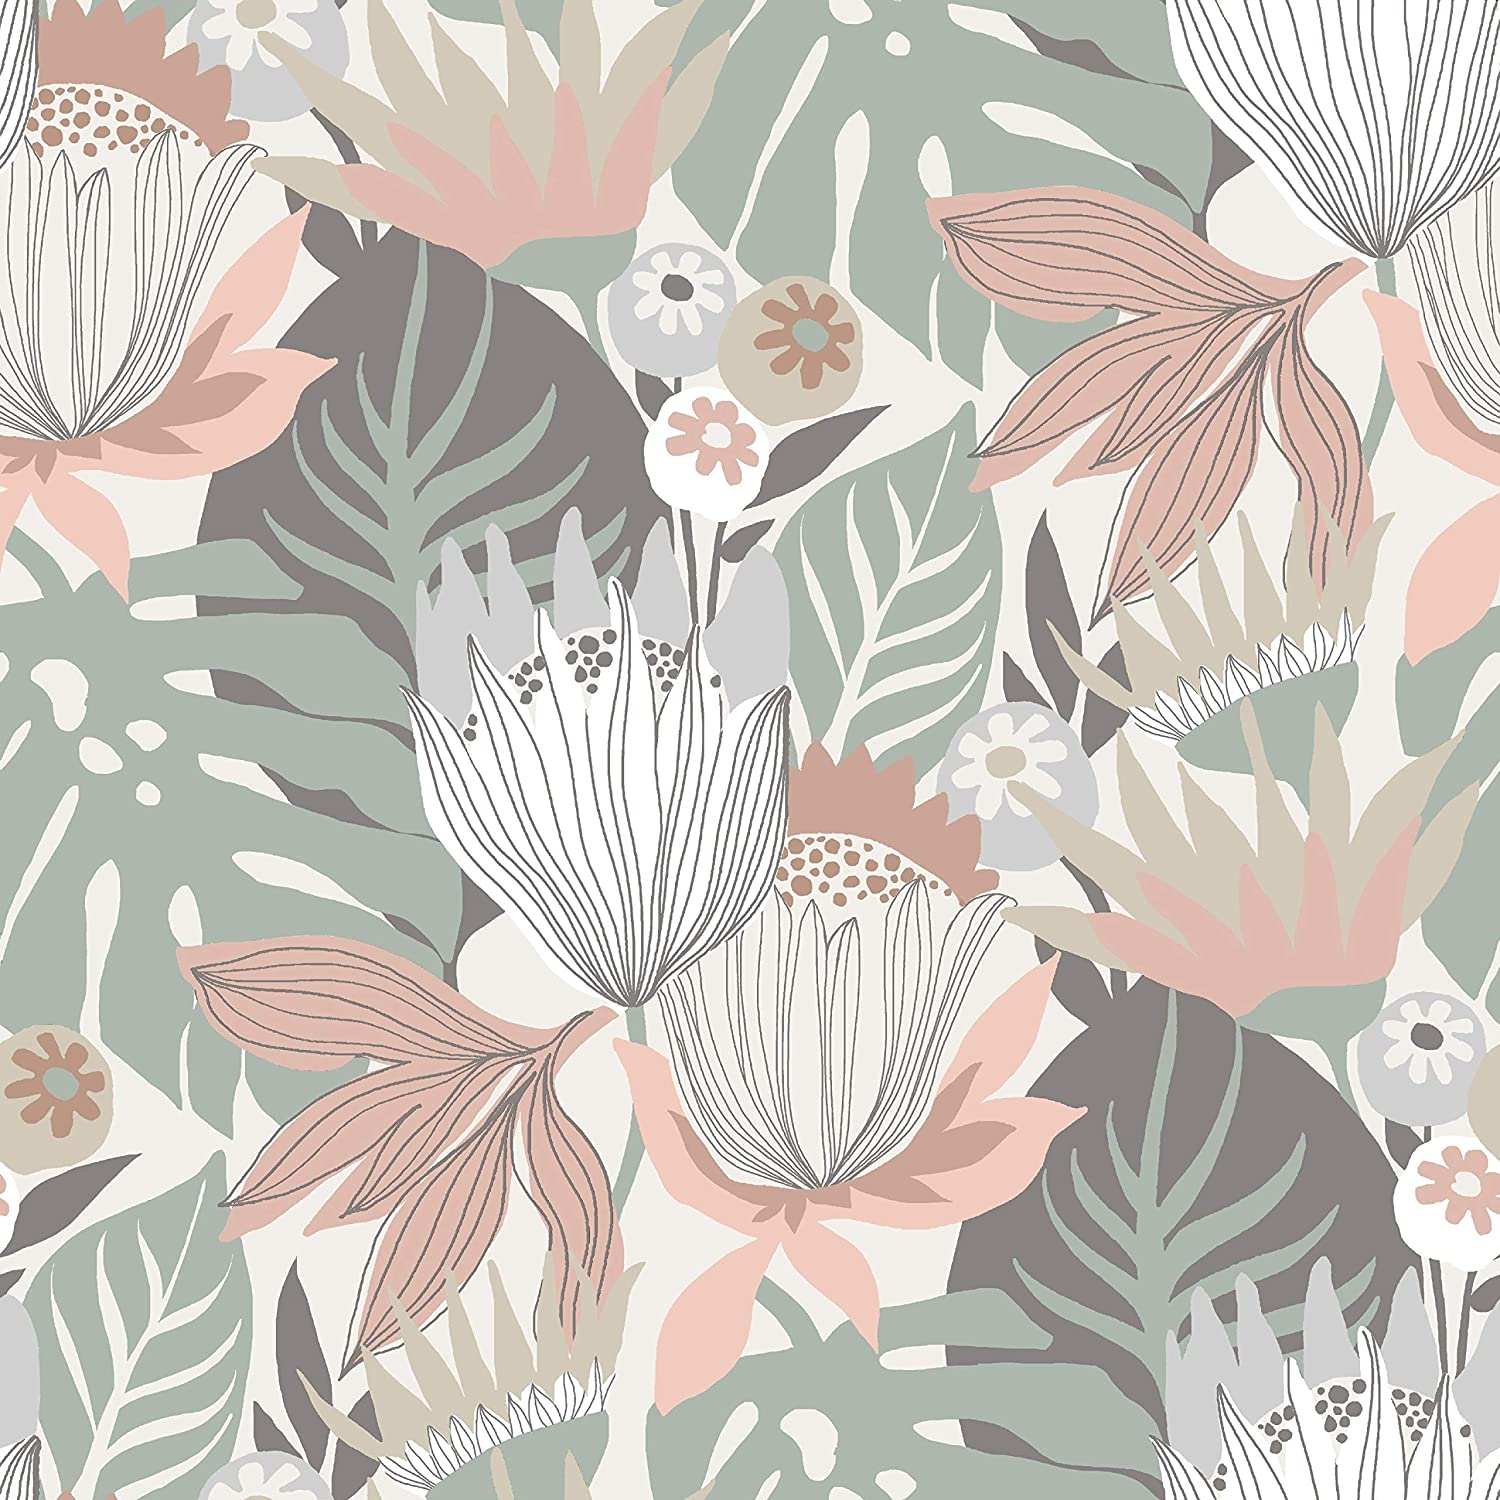 RoomMates Retro Tropical Leaves Pink & Green Peel and Stick Wallpaper | Removable Wallpaper | Self Adhesive Wallpaper